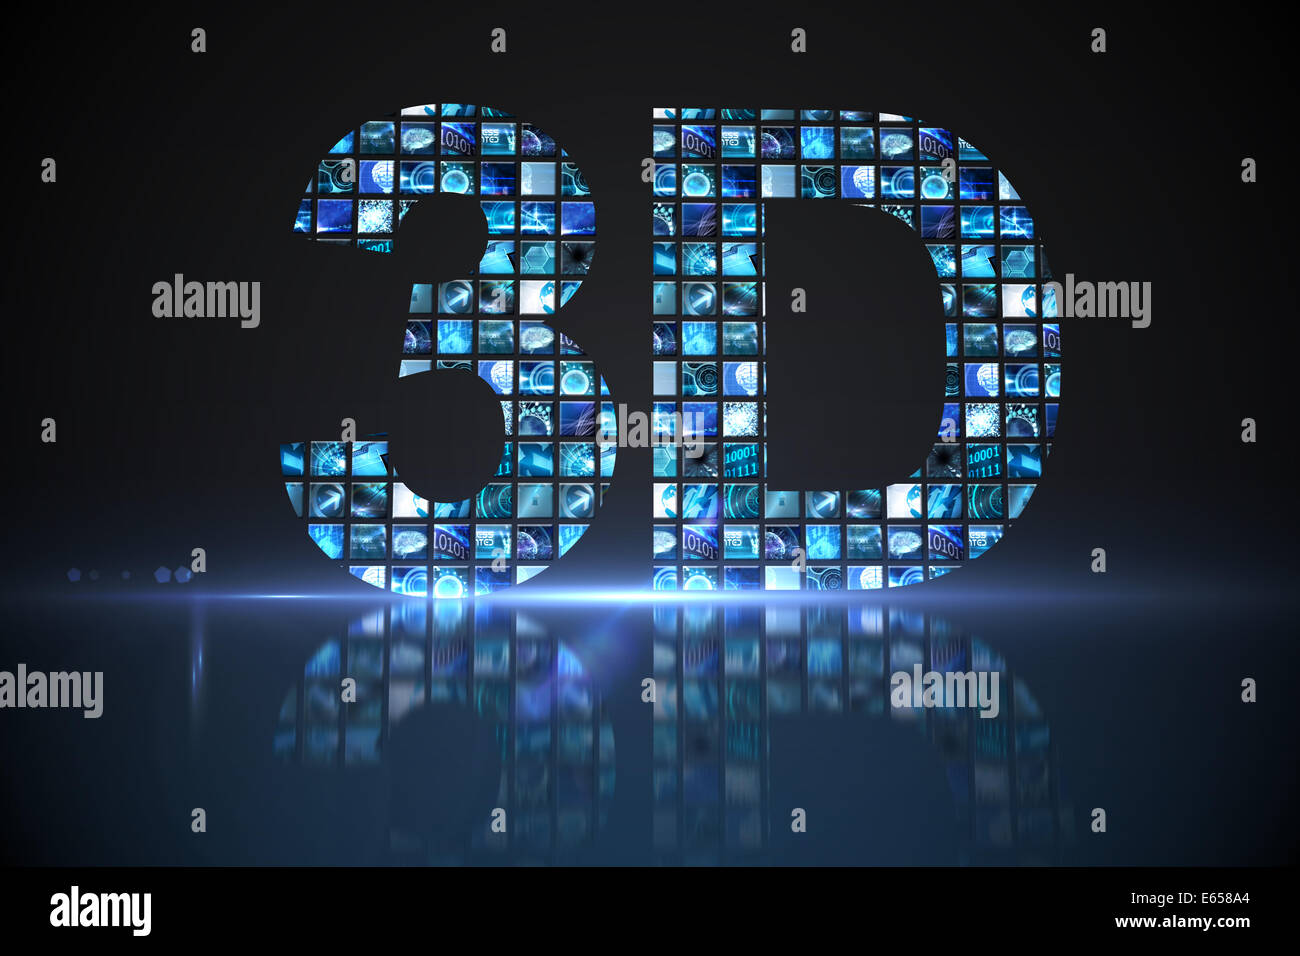 3D made of digital screens in blue - Stock Image